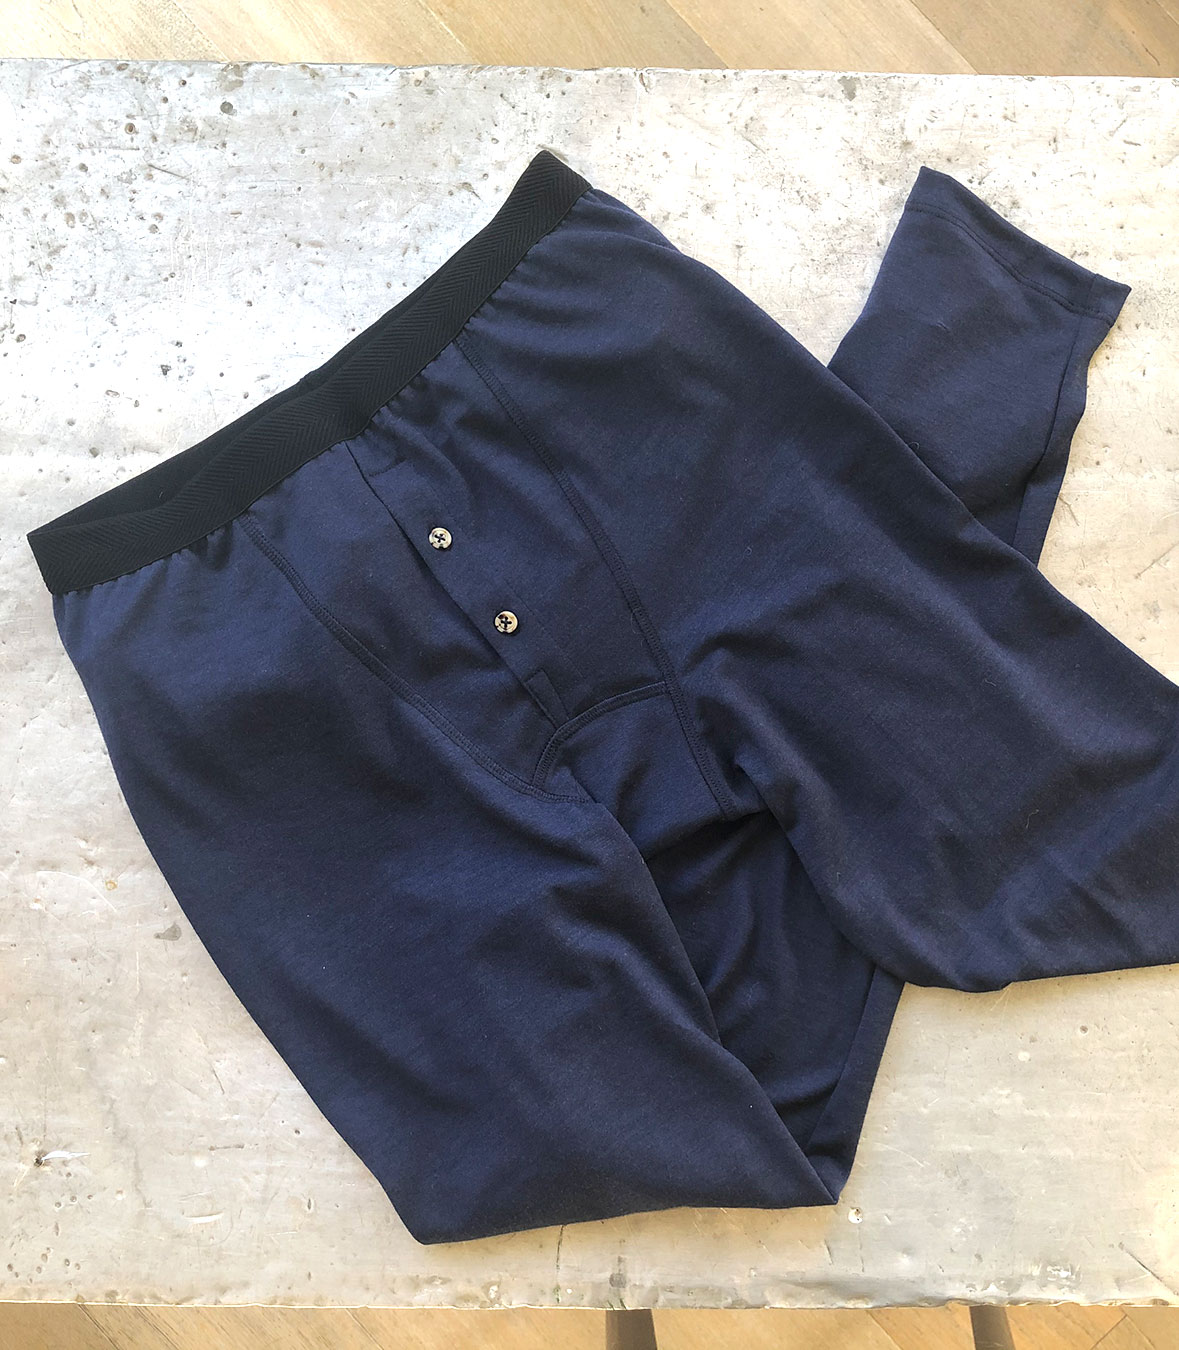 Wool Long John's Made in USA | RAMBLERS WAY